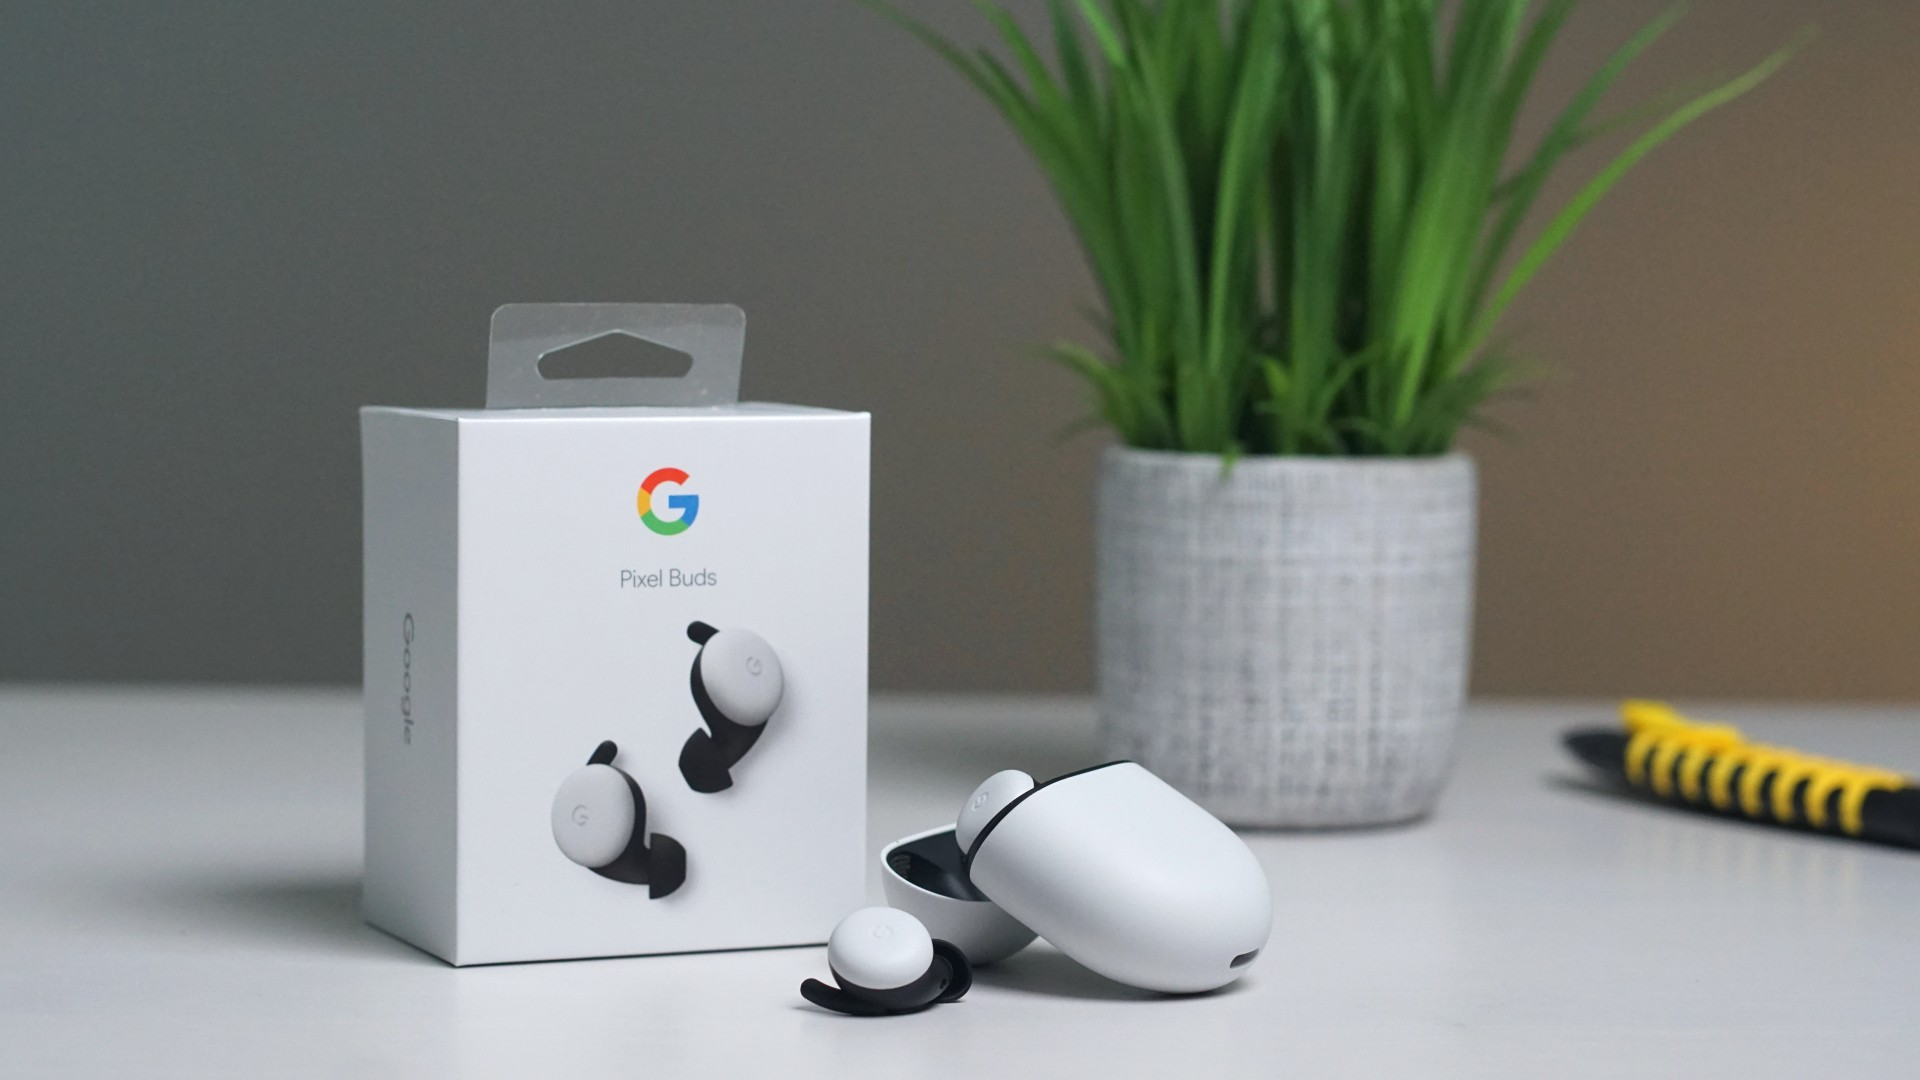 Unboxing and setting up the new Google Pixel Buds